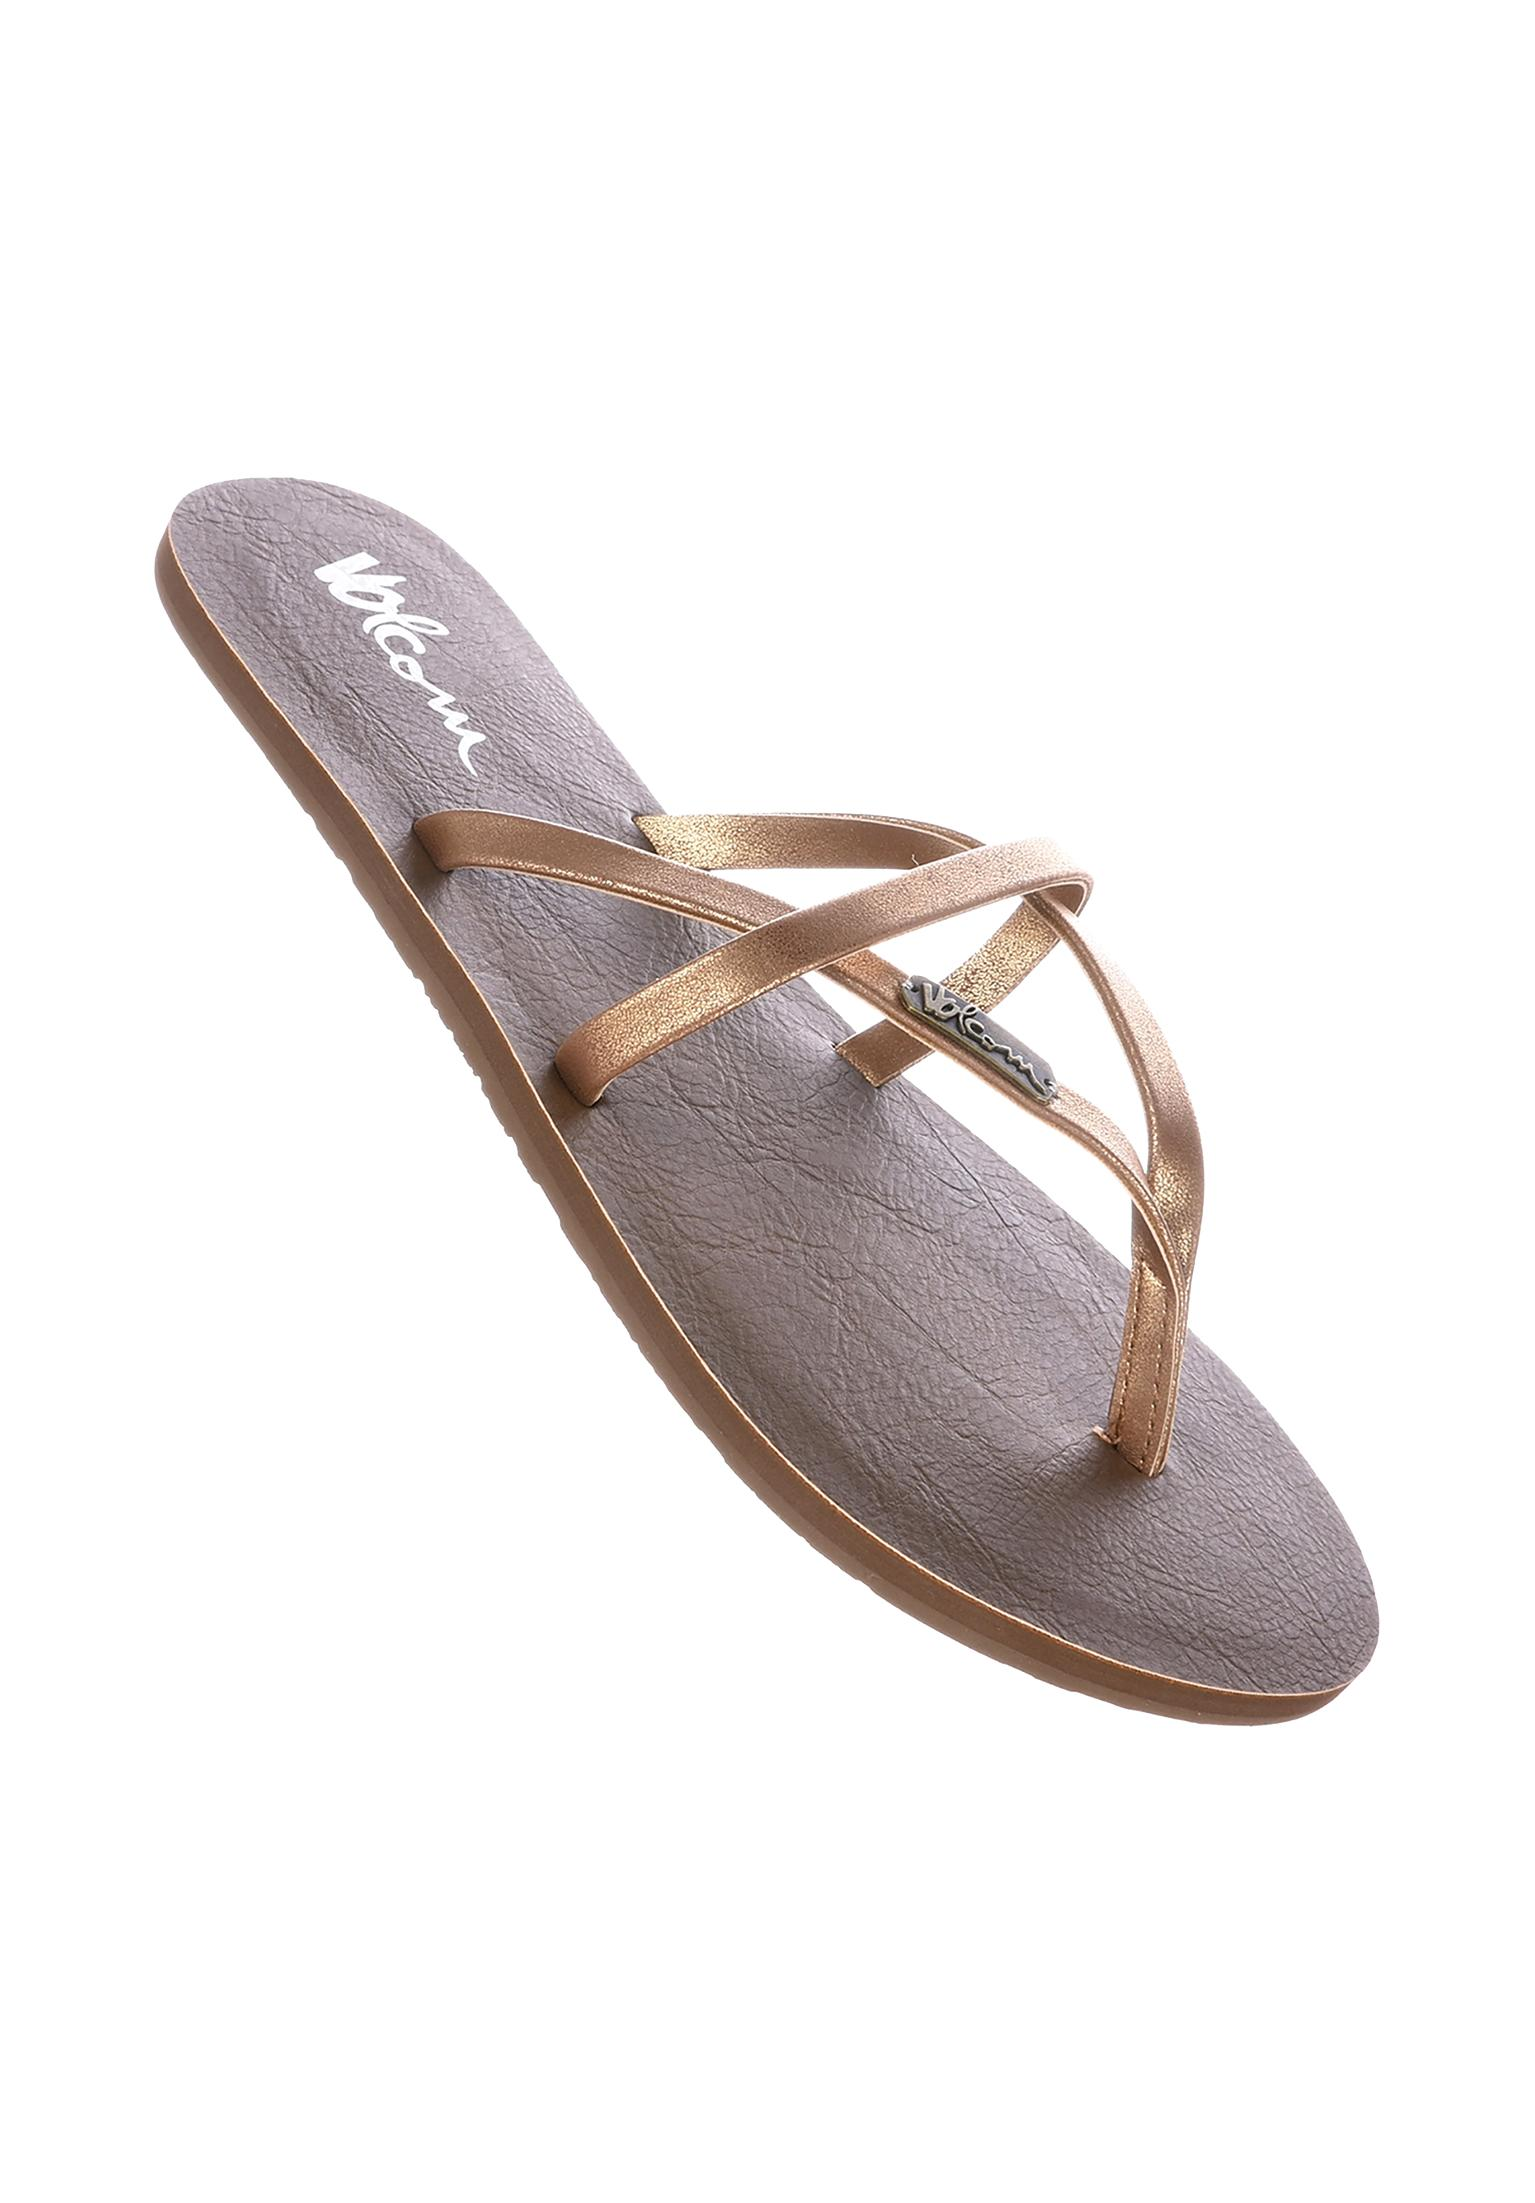 bd8a58a43 All Night Long Volcom Sandals in bronze for Women